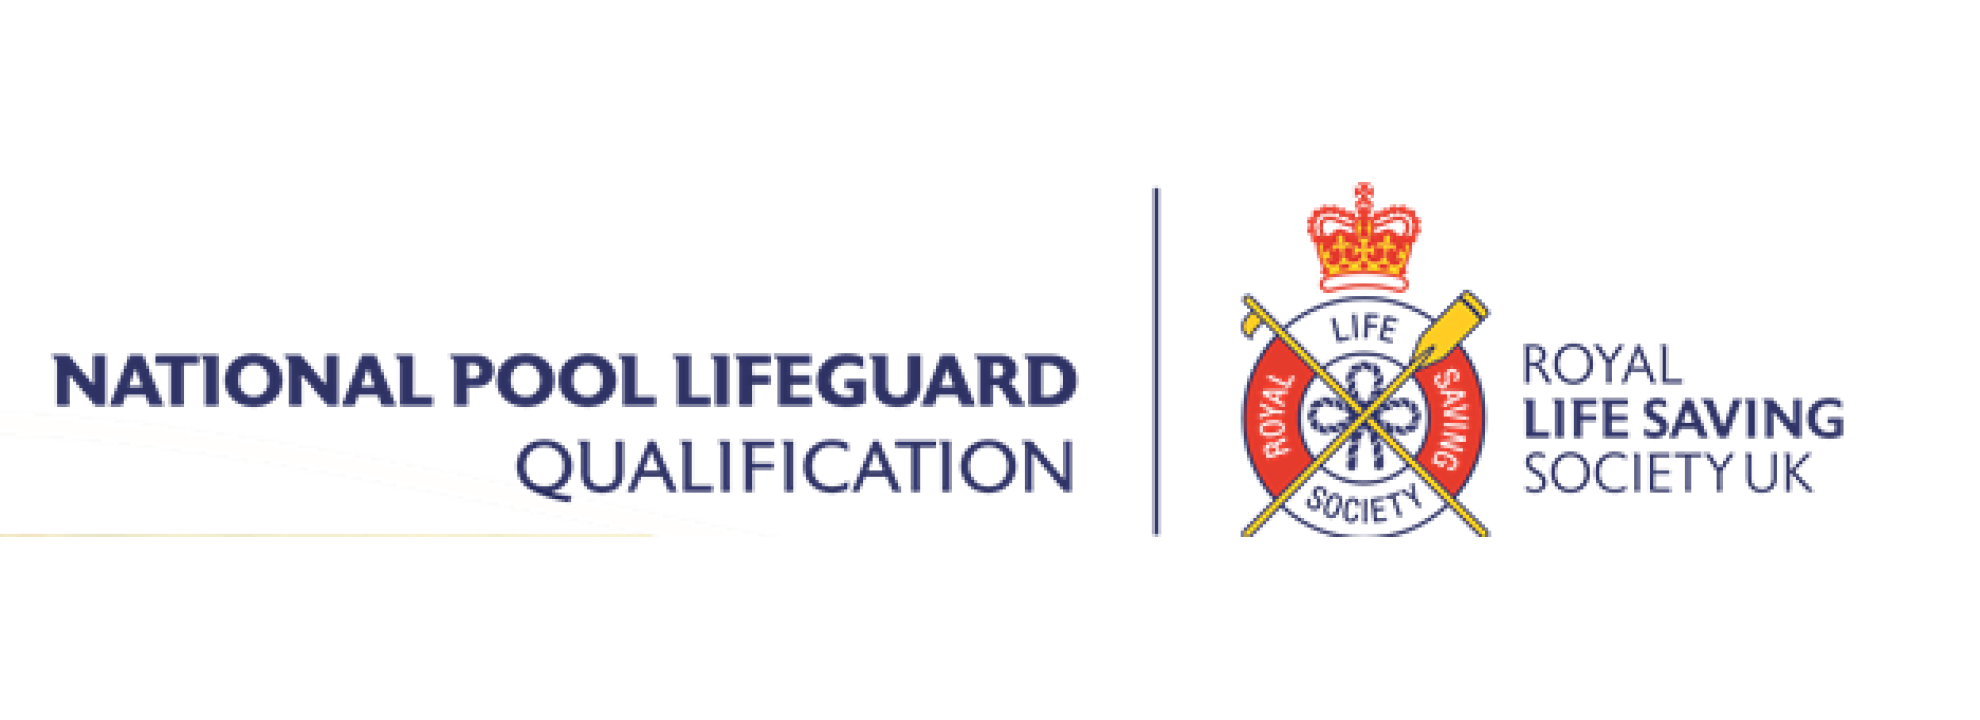 National Pool Lifeguard Qualification Banner